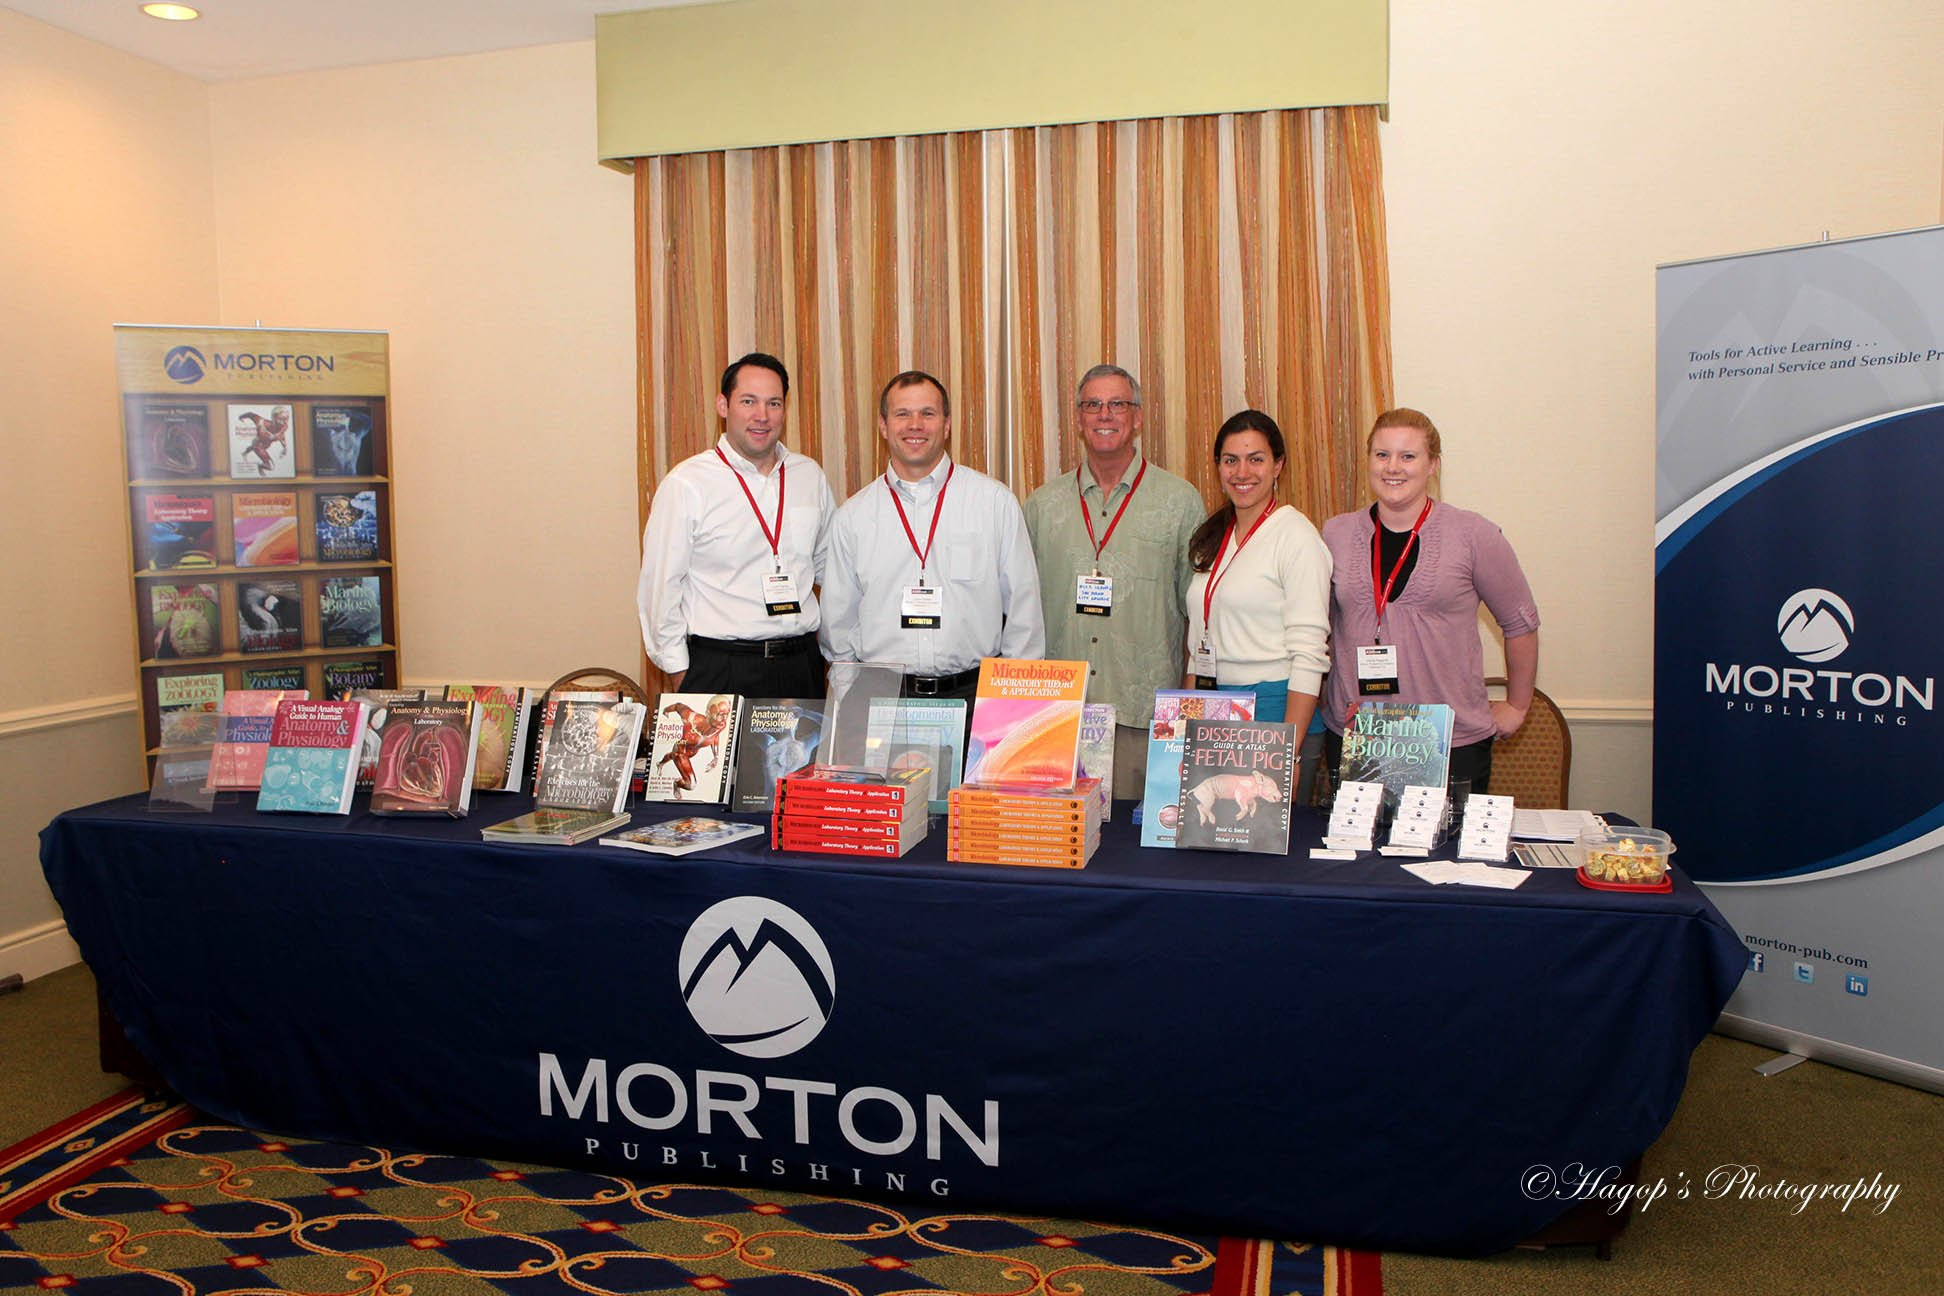 group photo posing at an exhibitor display during the conference